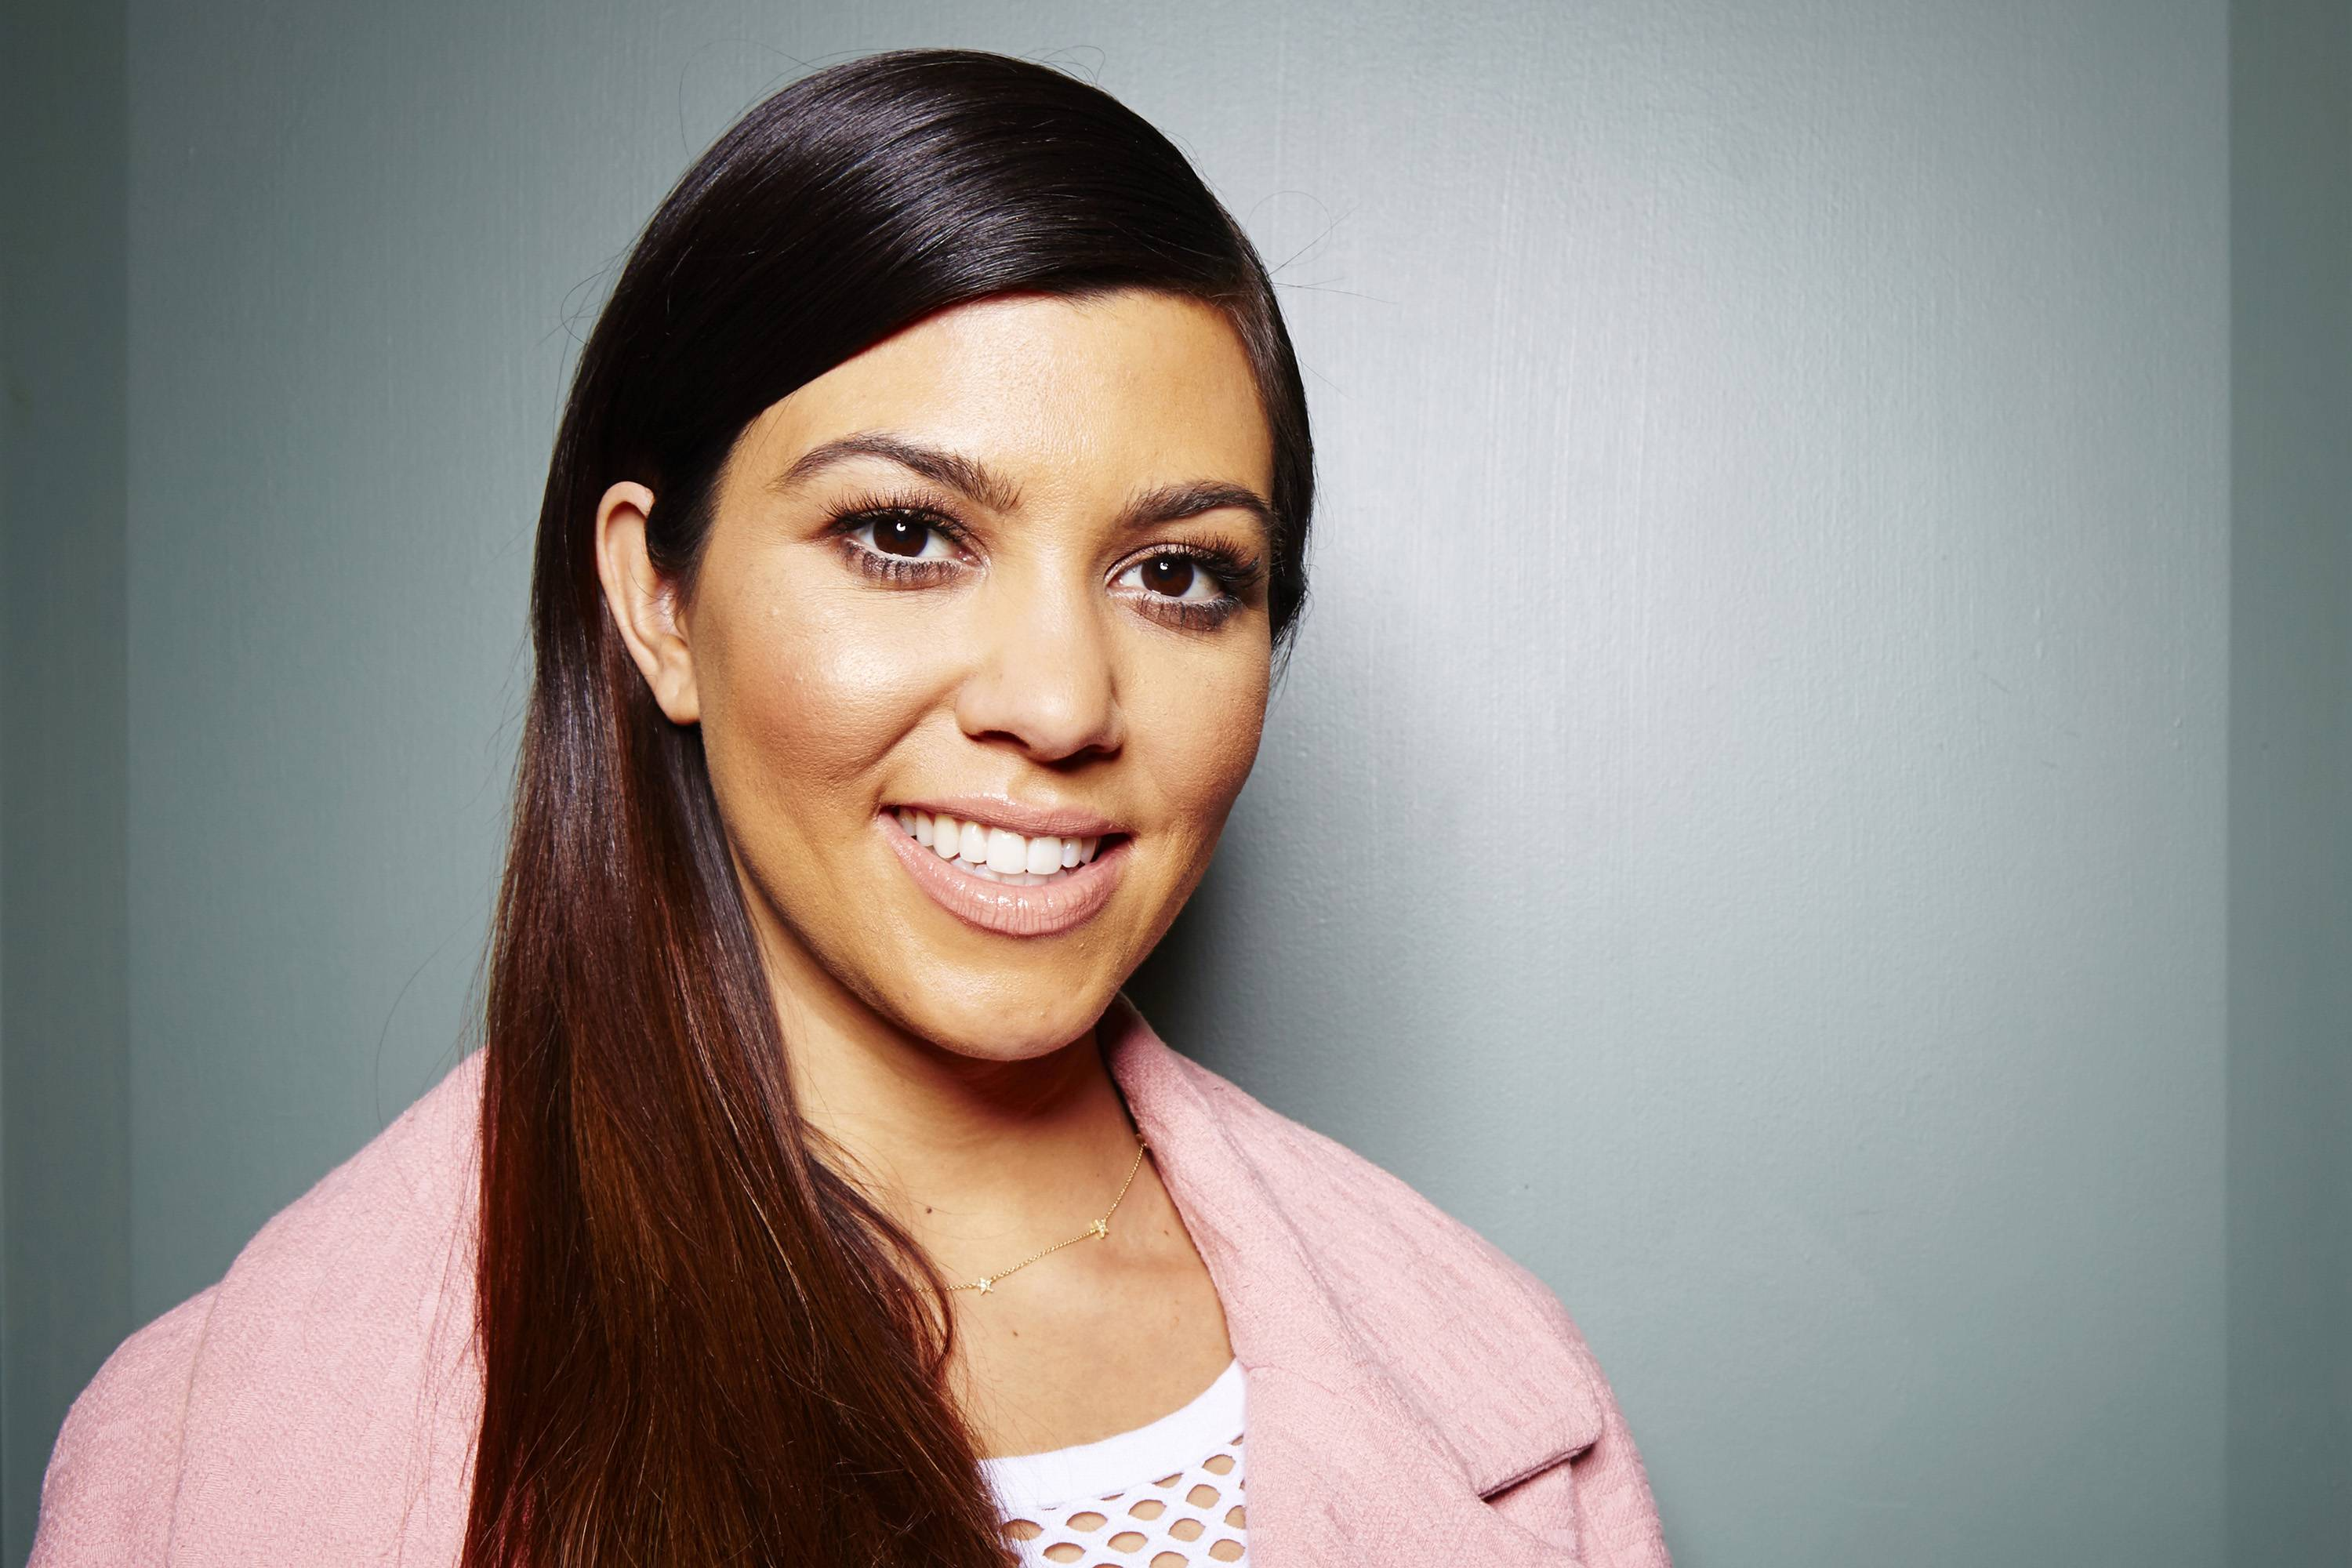 TV personality Kourtney Kardashian has been promoting the new Kardashian Kids clothing line, which is available at Babies R Us.